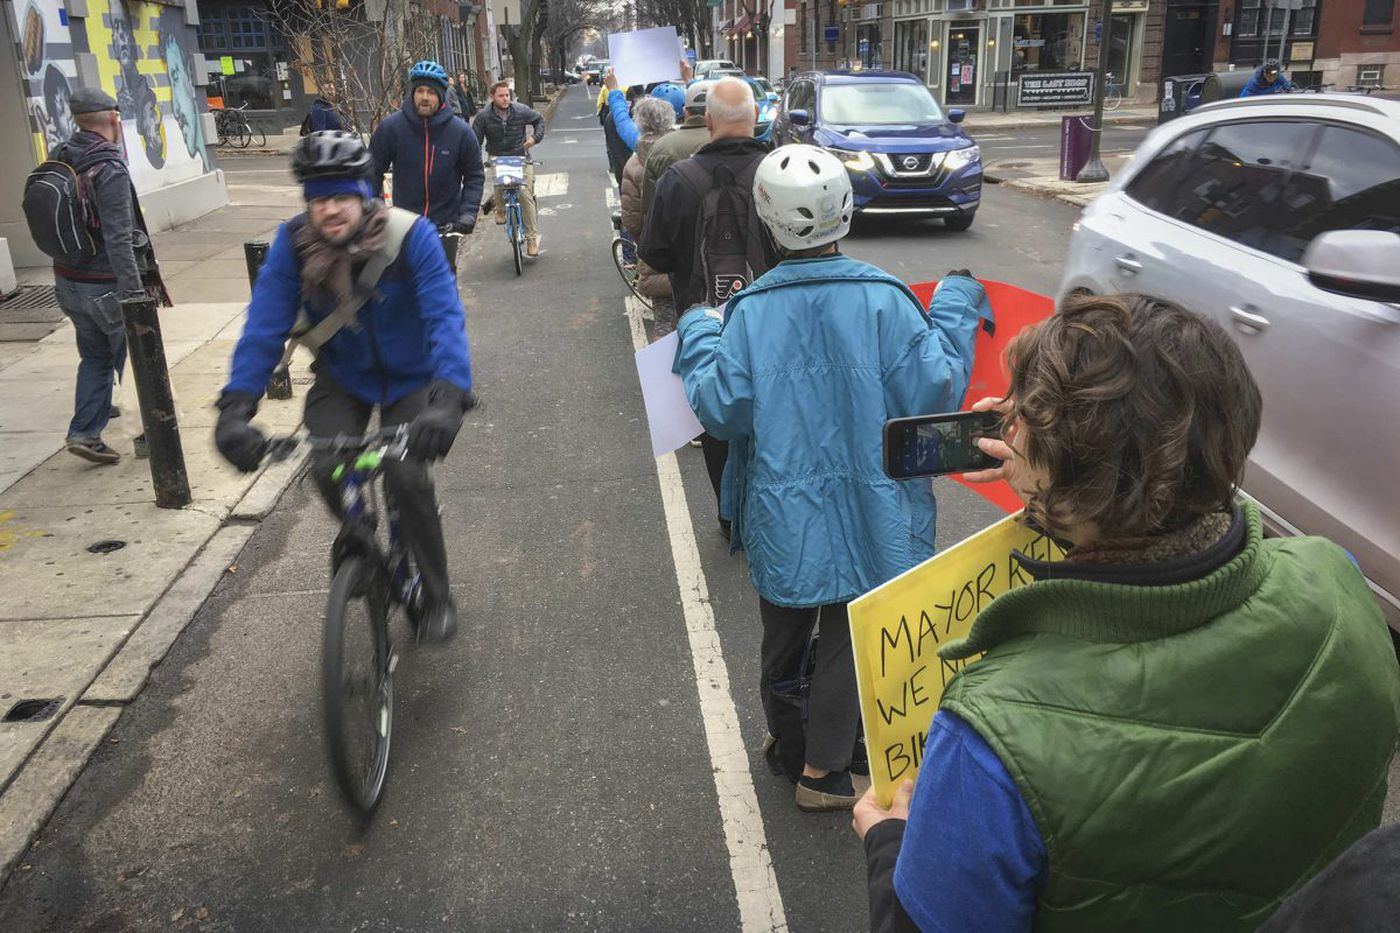 After another accident, bike lane advocates again take to Philly streets